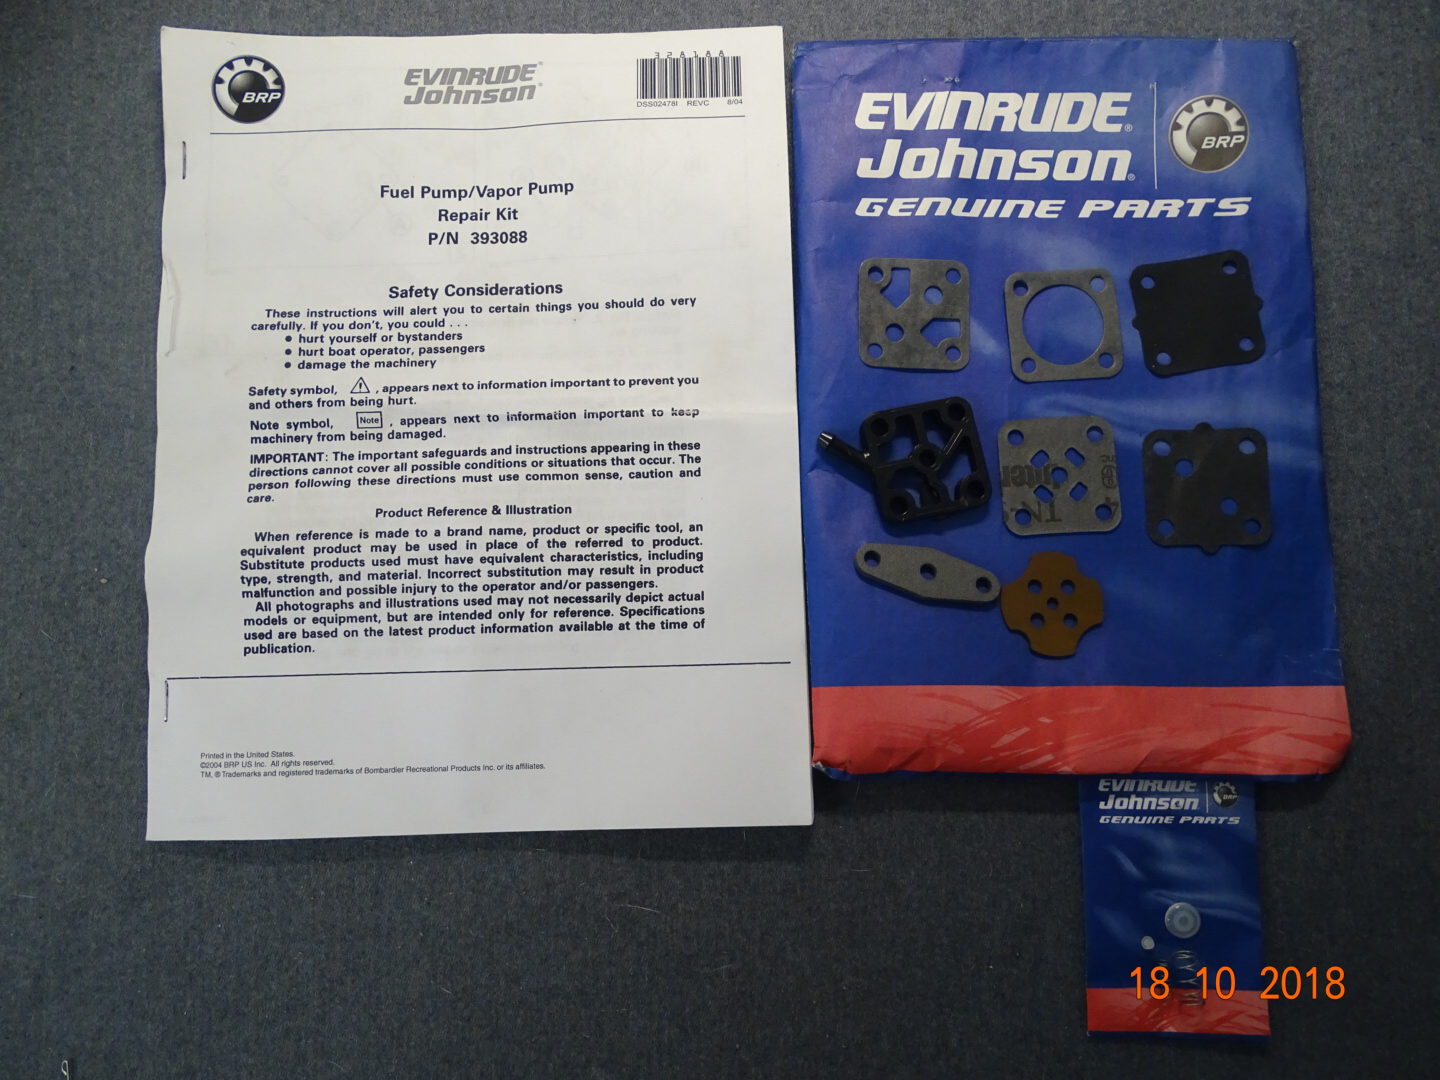 Evinrude Johnson Fuel pump repair kit 0393088